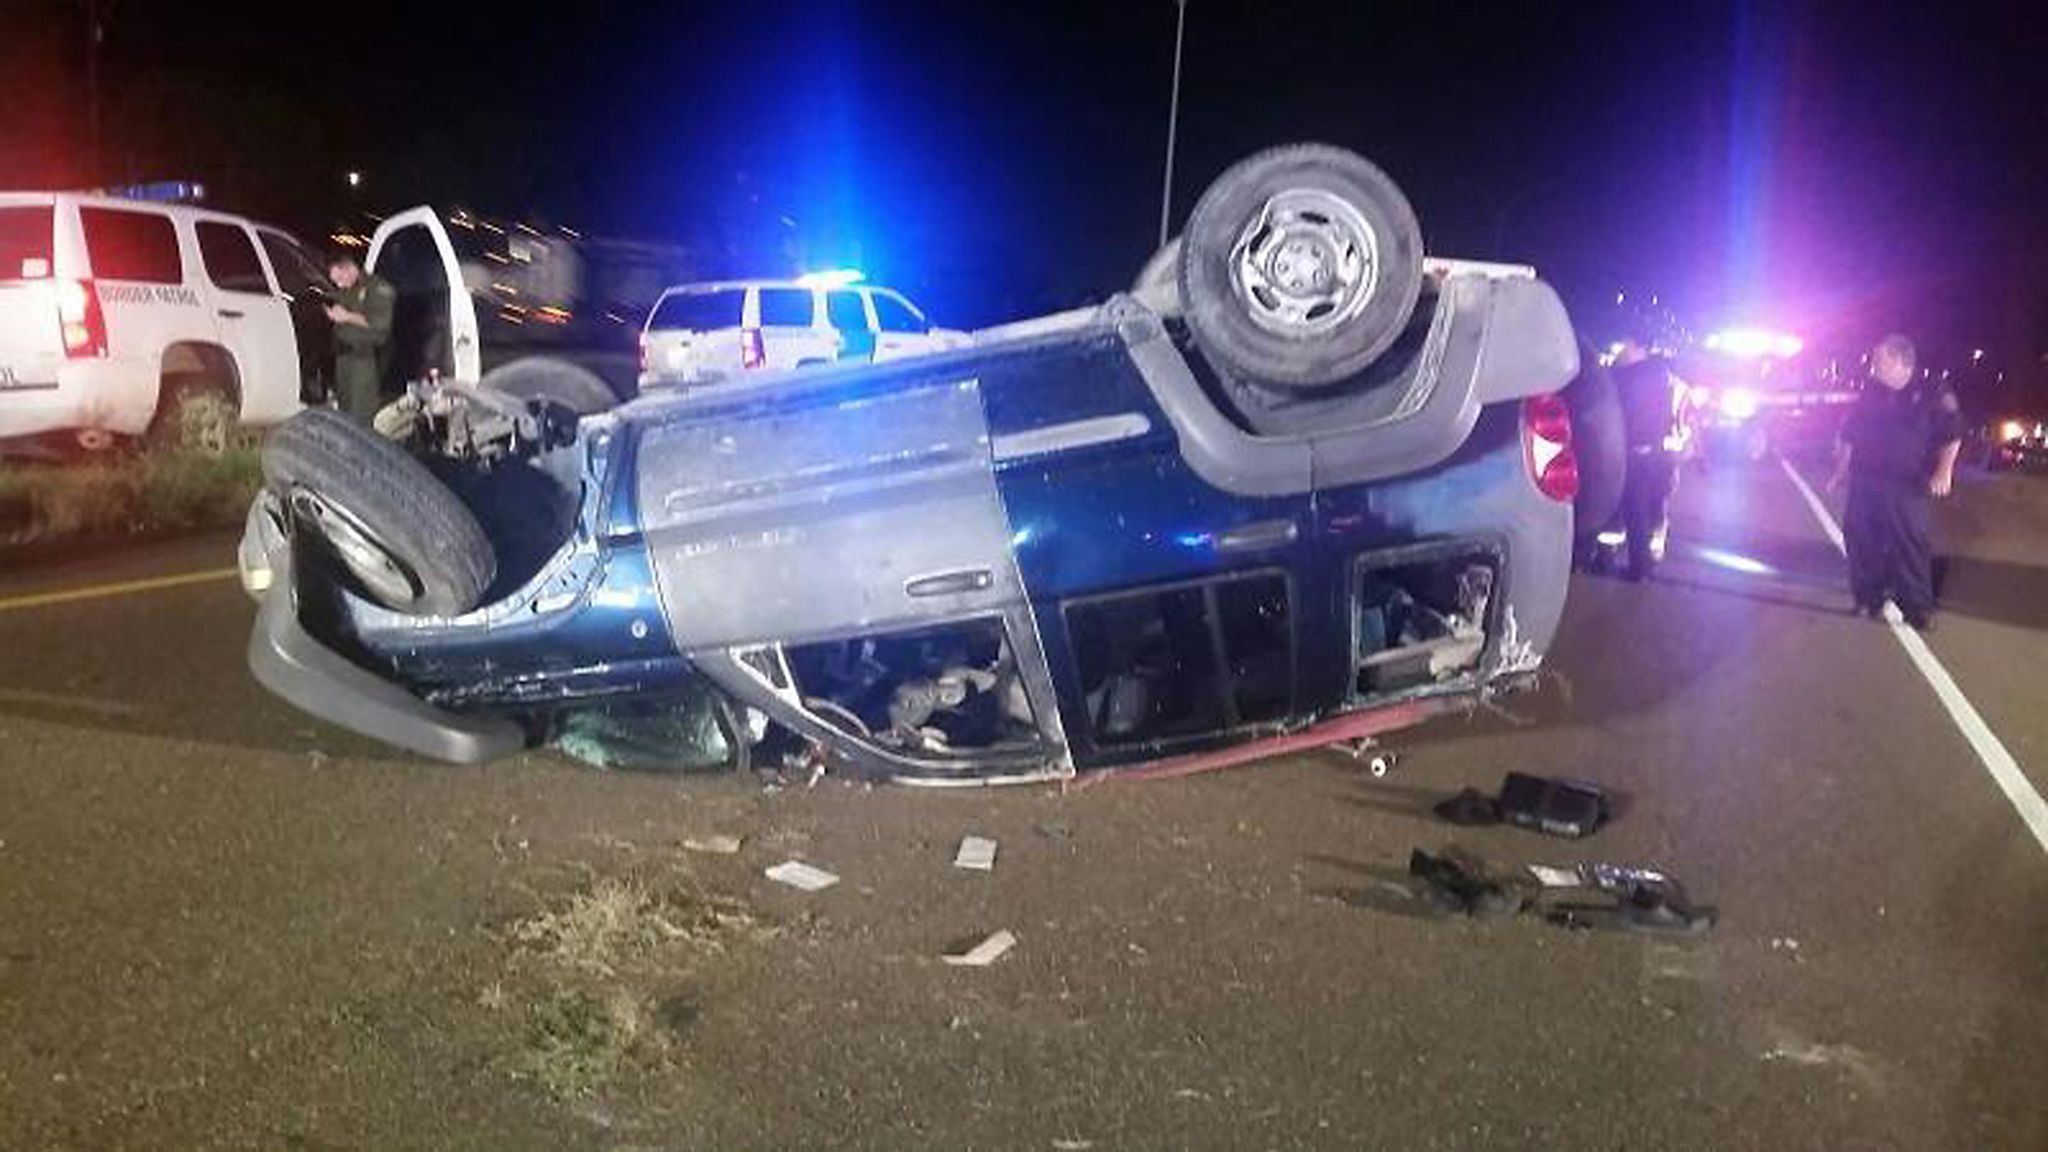 Rio_Grande_Valley_Border_Patrol_agents_provide_first_aid_to_accident_victim